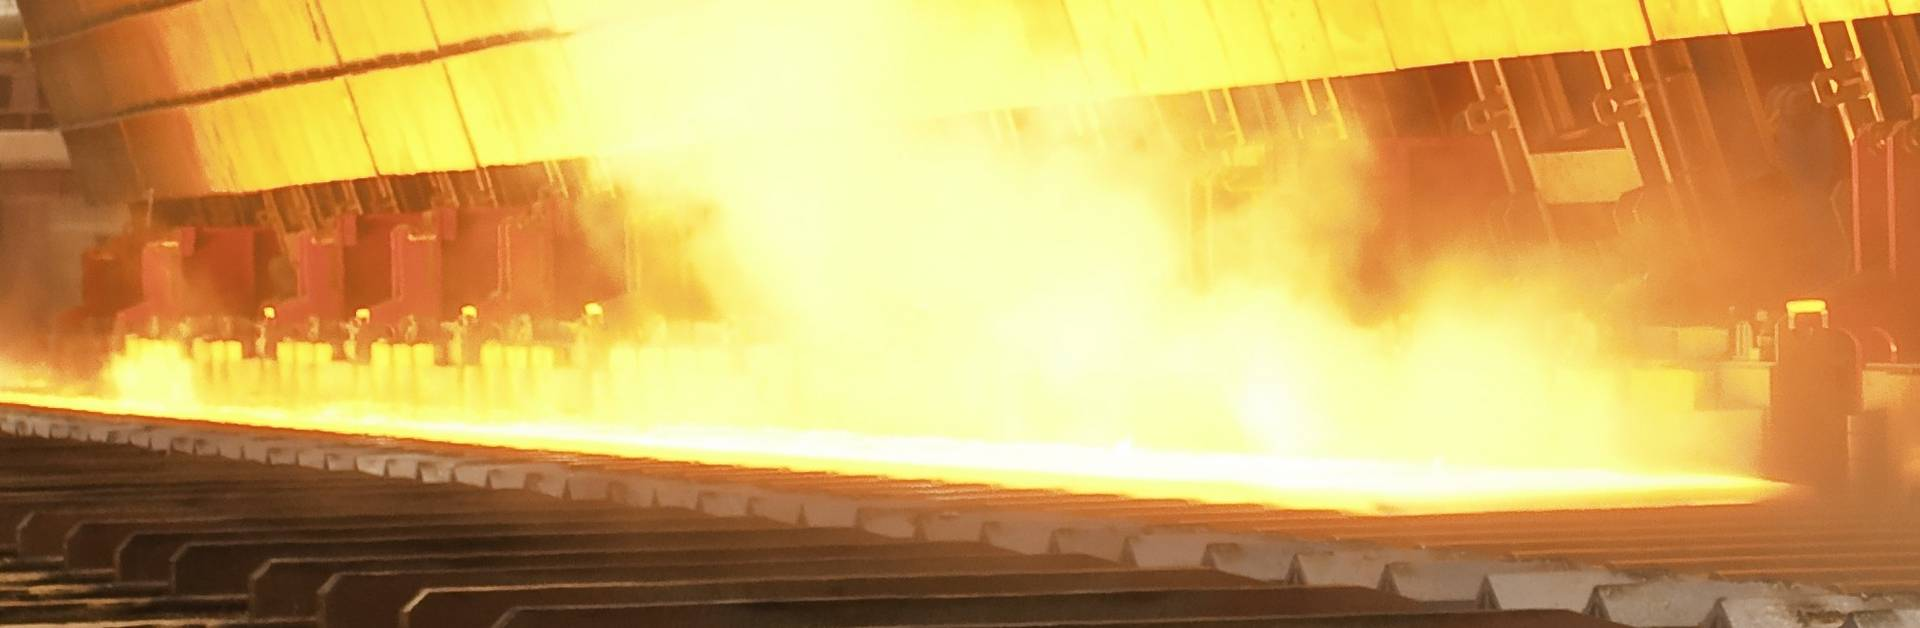 Contact-free measurement of the temperature in steel and hot